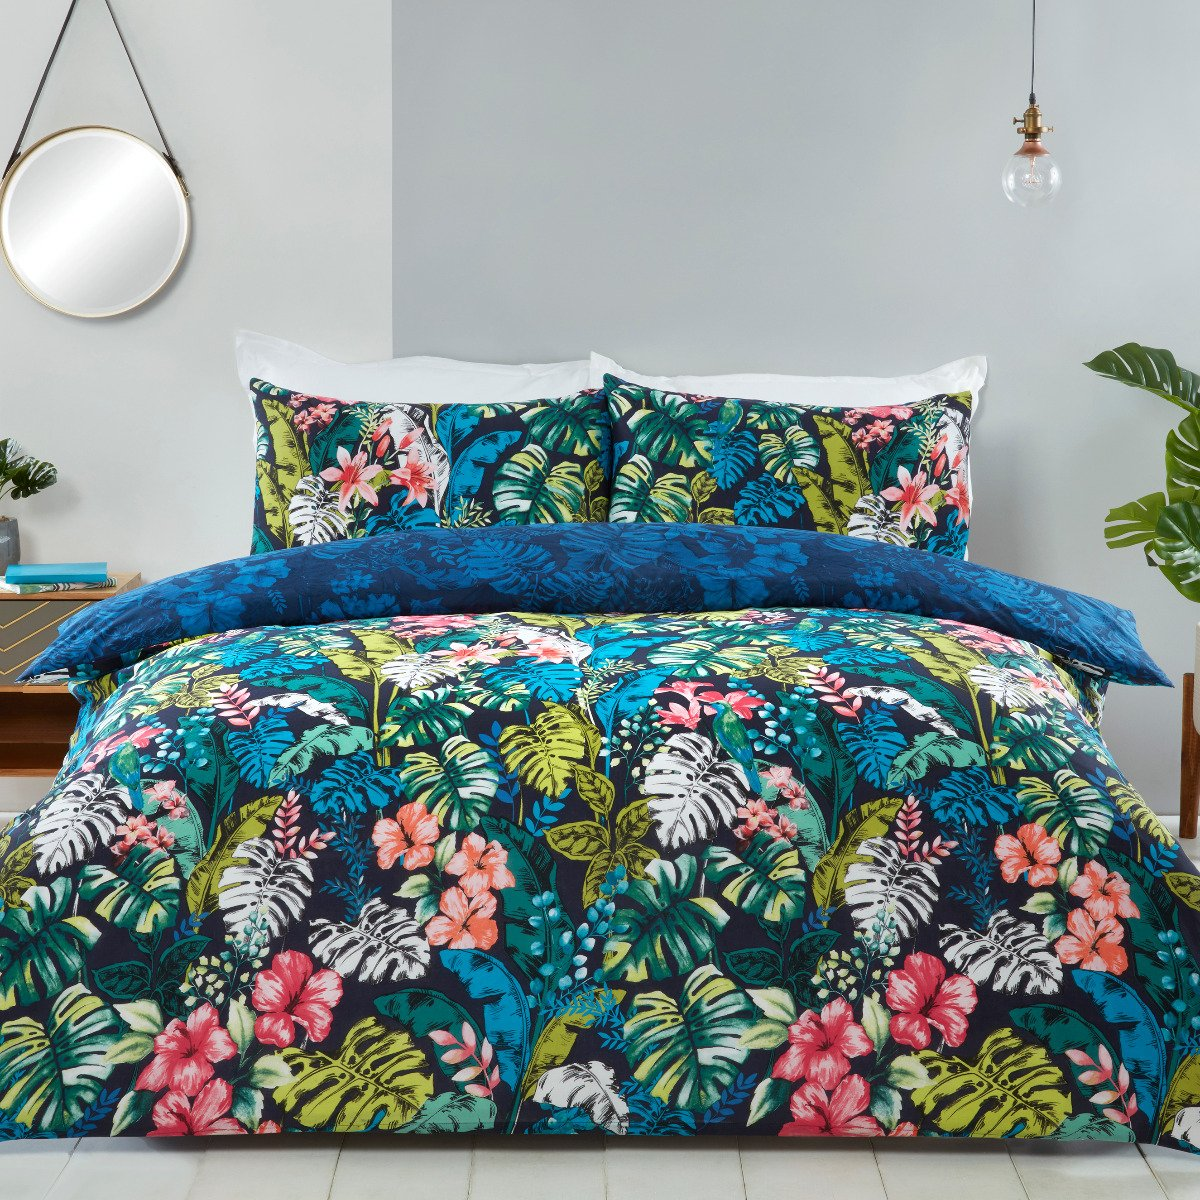 Tropical Jungle Leaf Navy Bedding Reversible Duvet Cover And Pillowcase Set